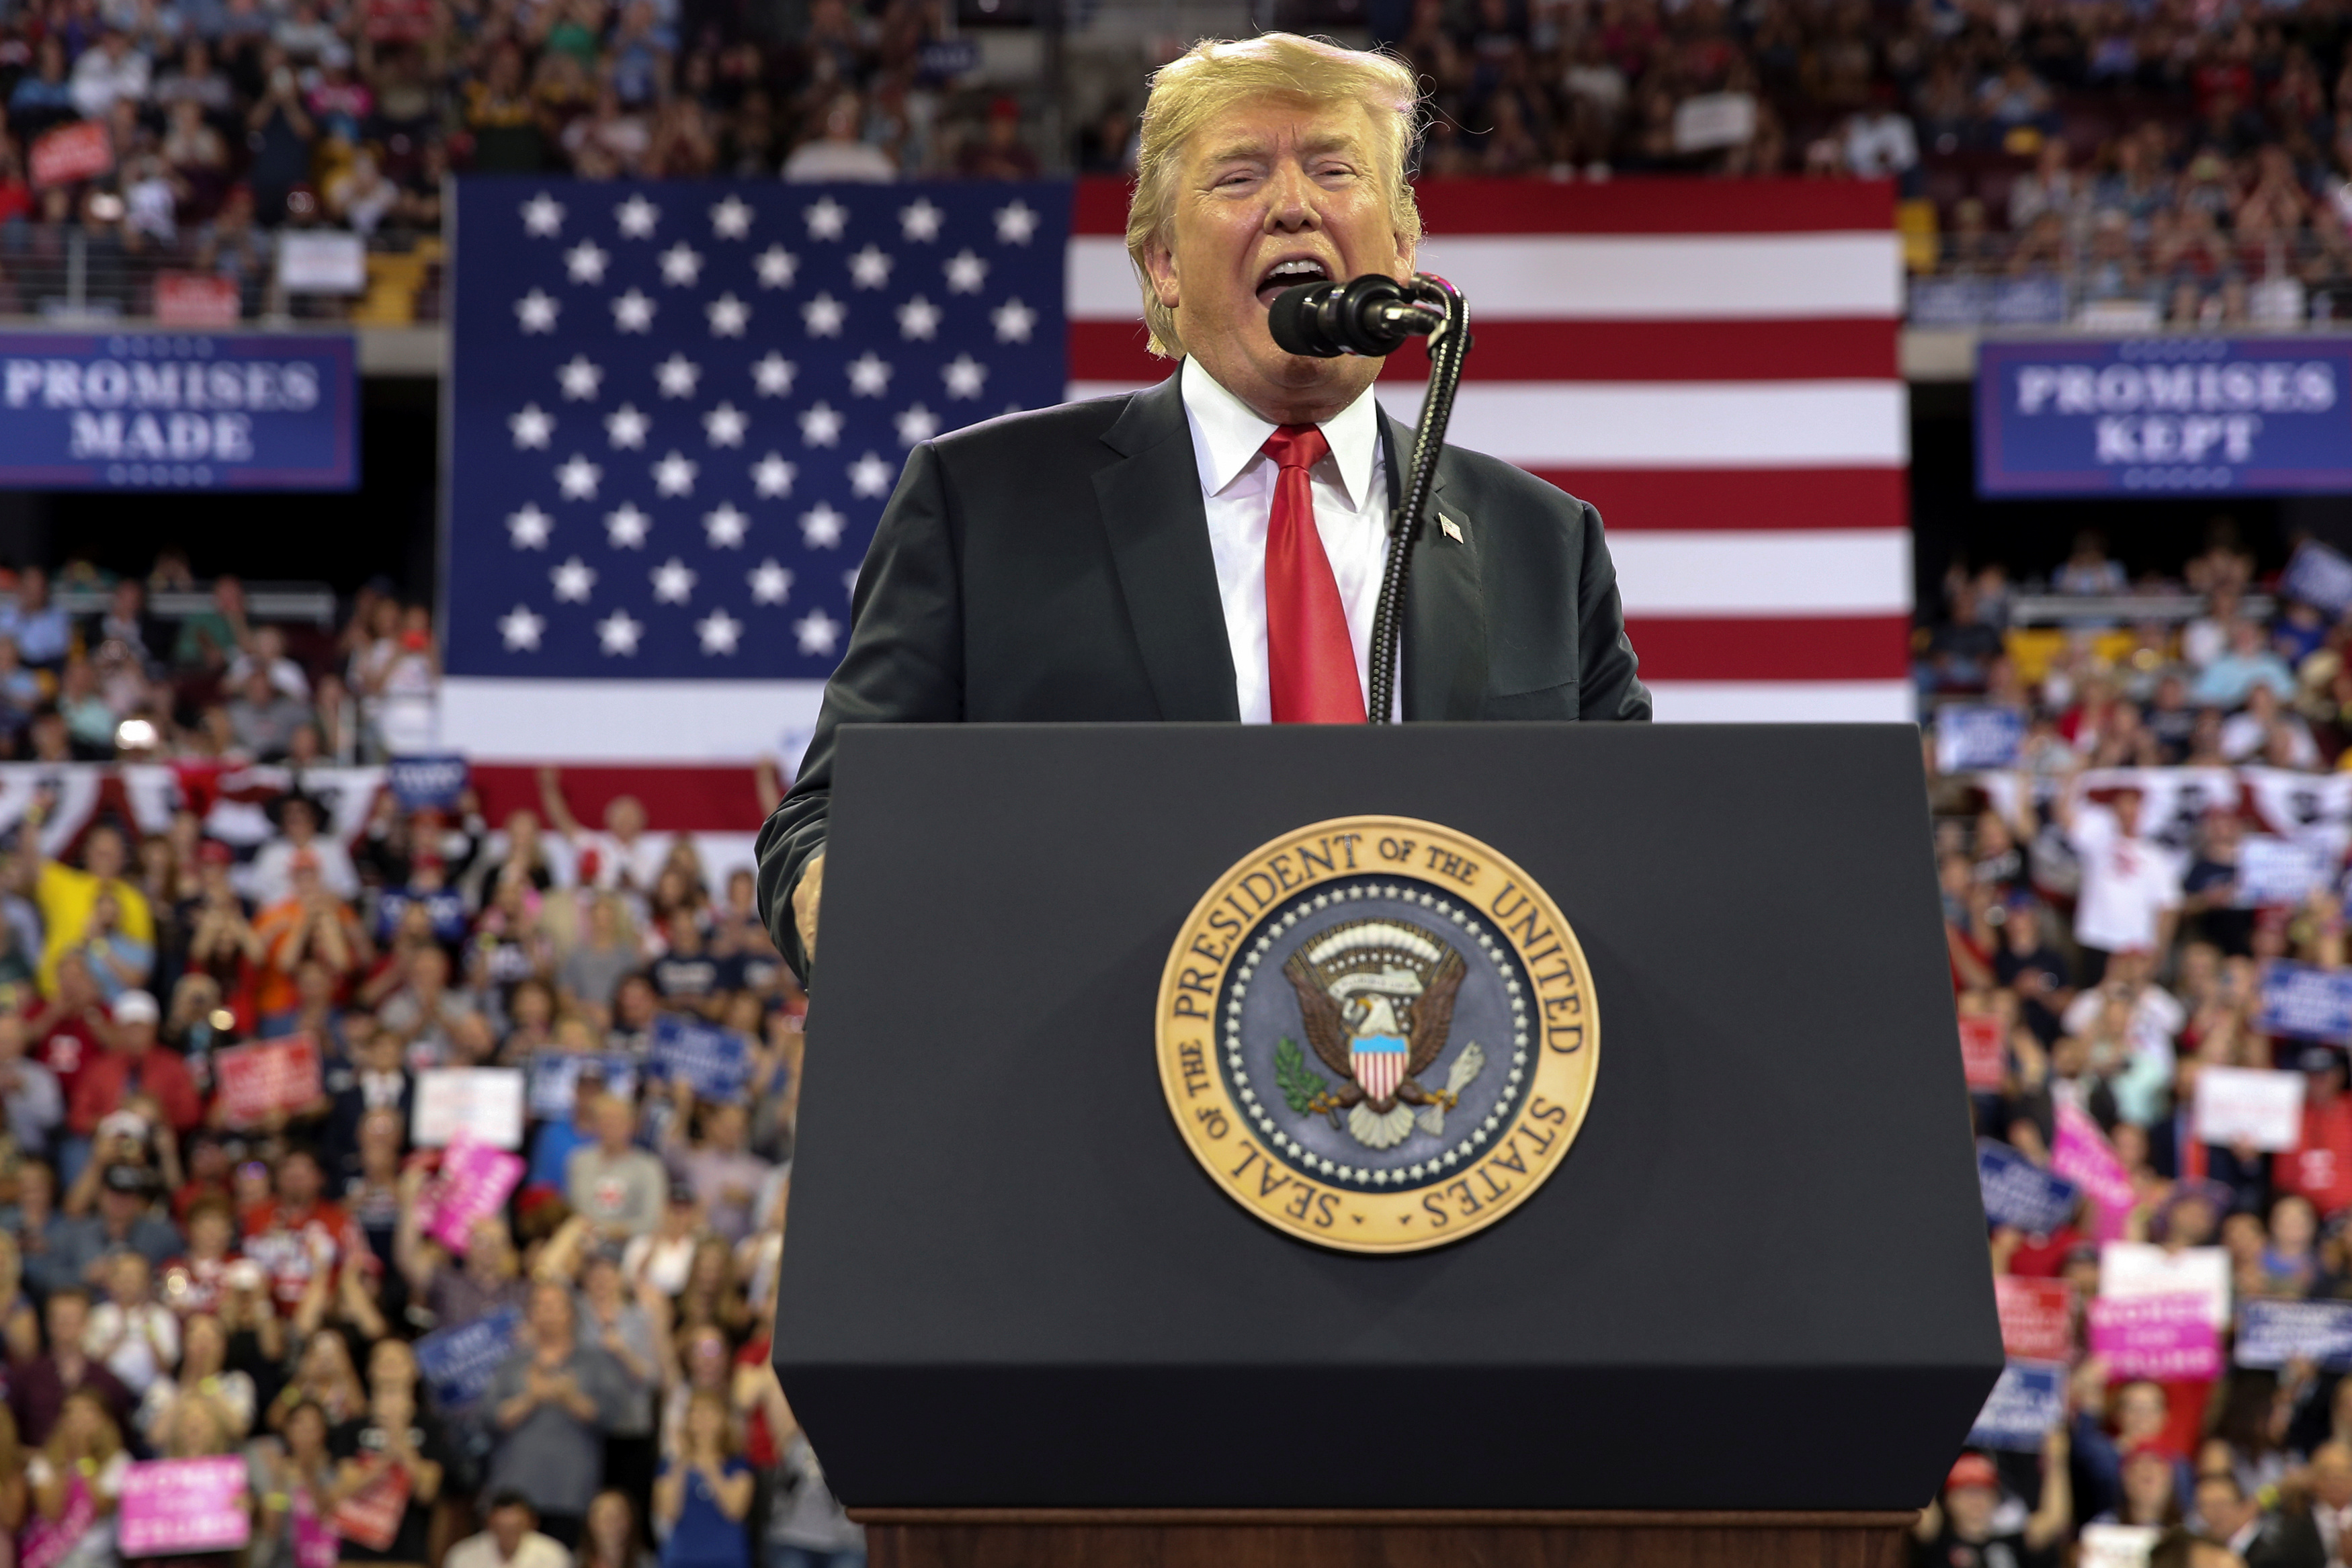 President Donald Trump at a rally with supporters in Duluth, Minnesota on June 20, 2018.